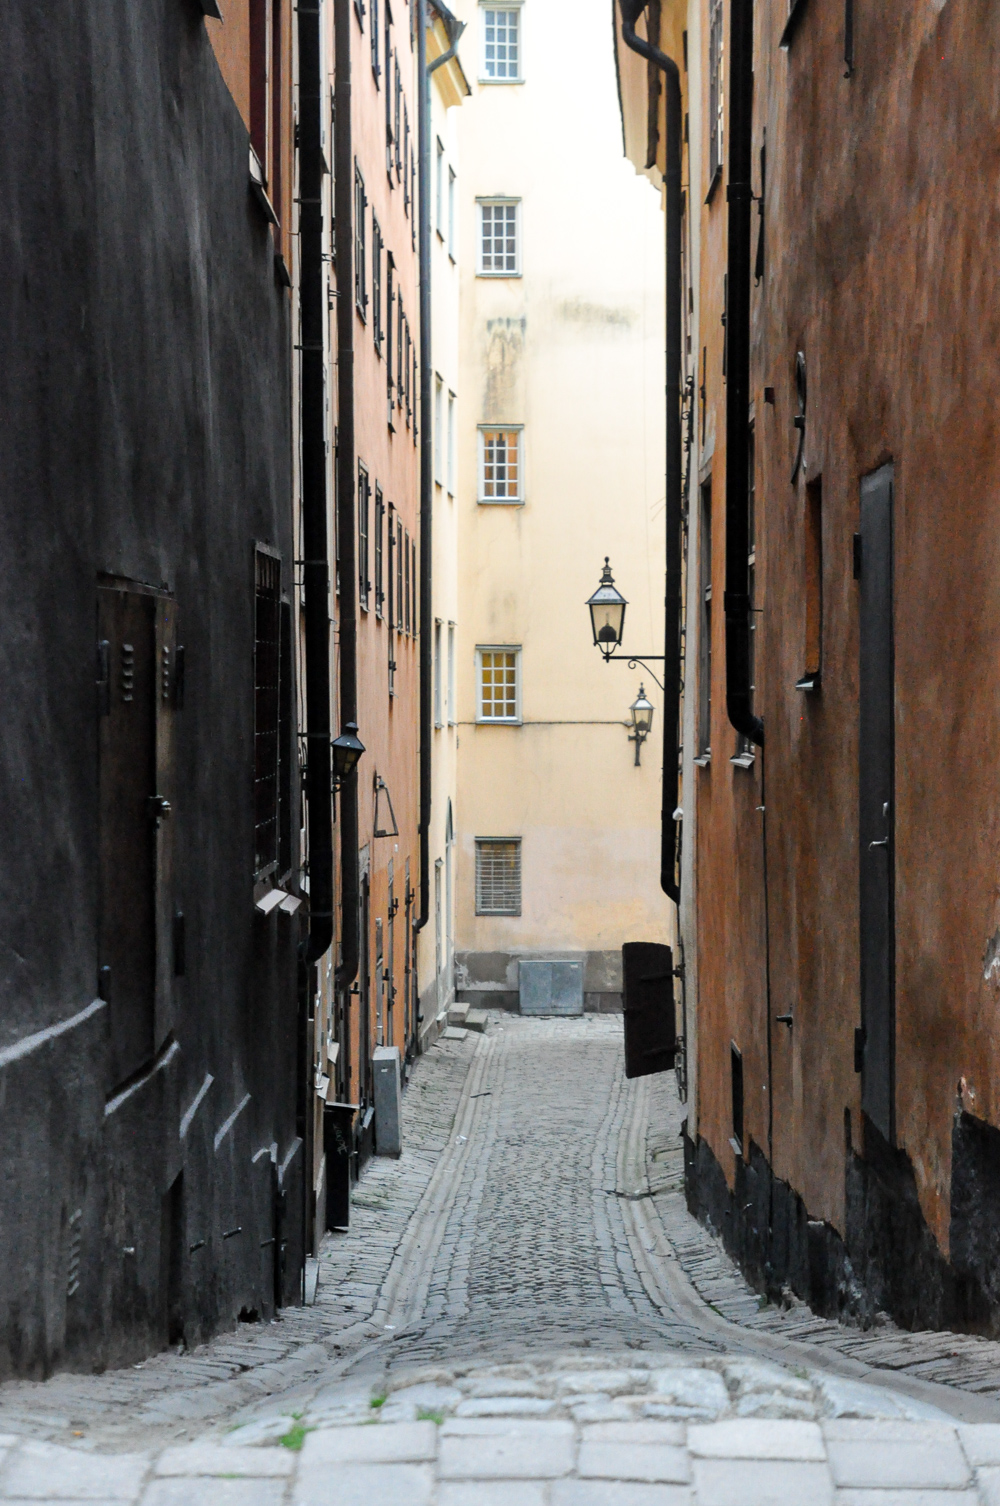 Alley ways of Gamla Stan, Stockholm's old town.